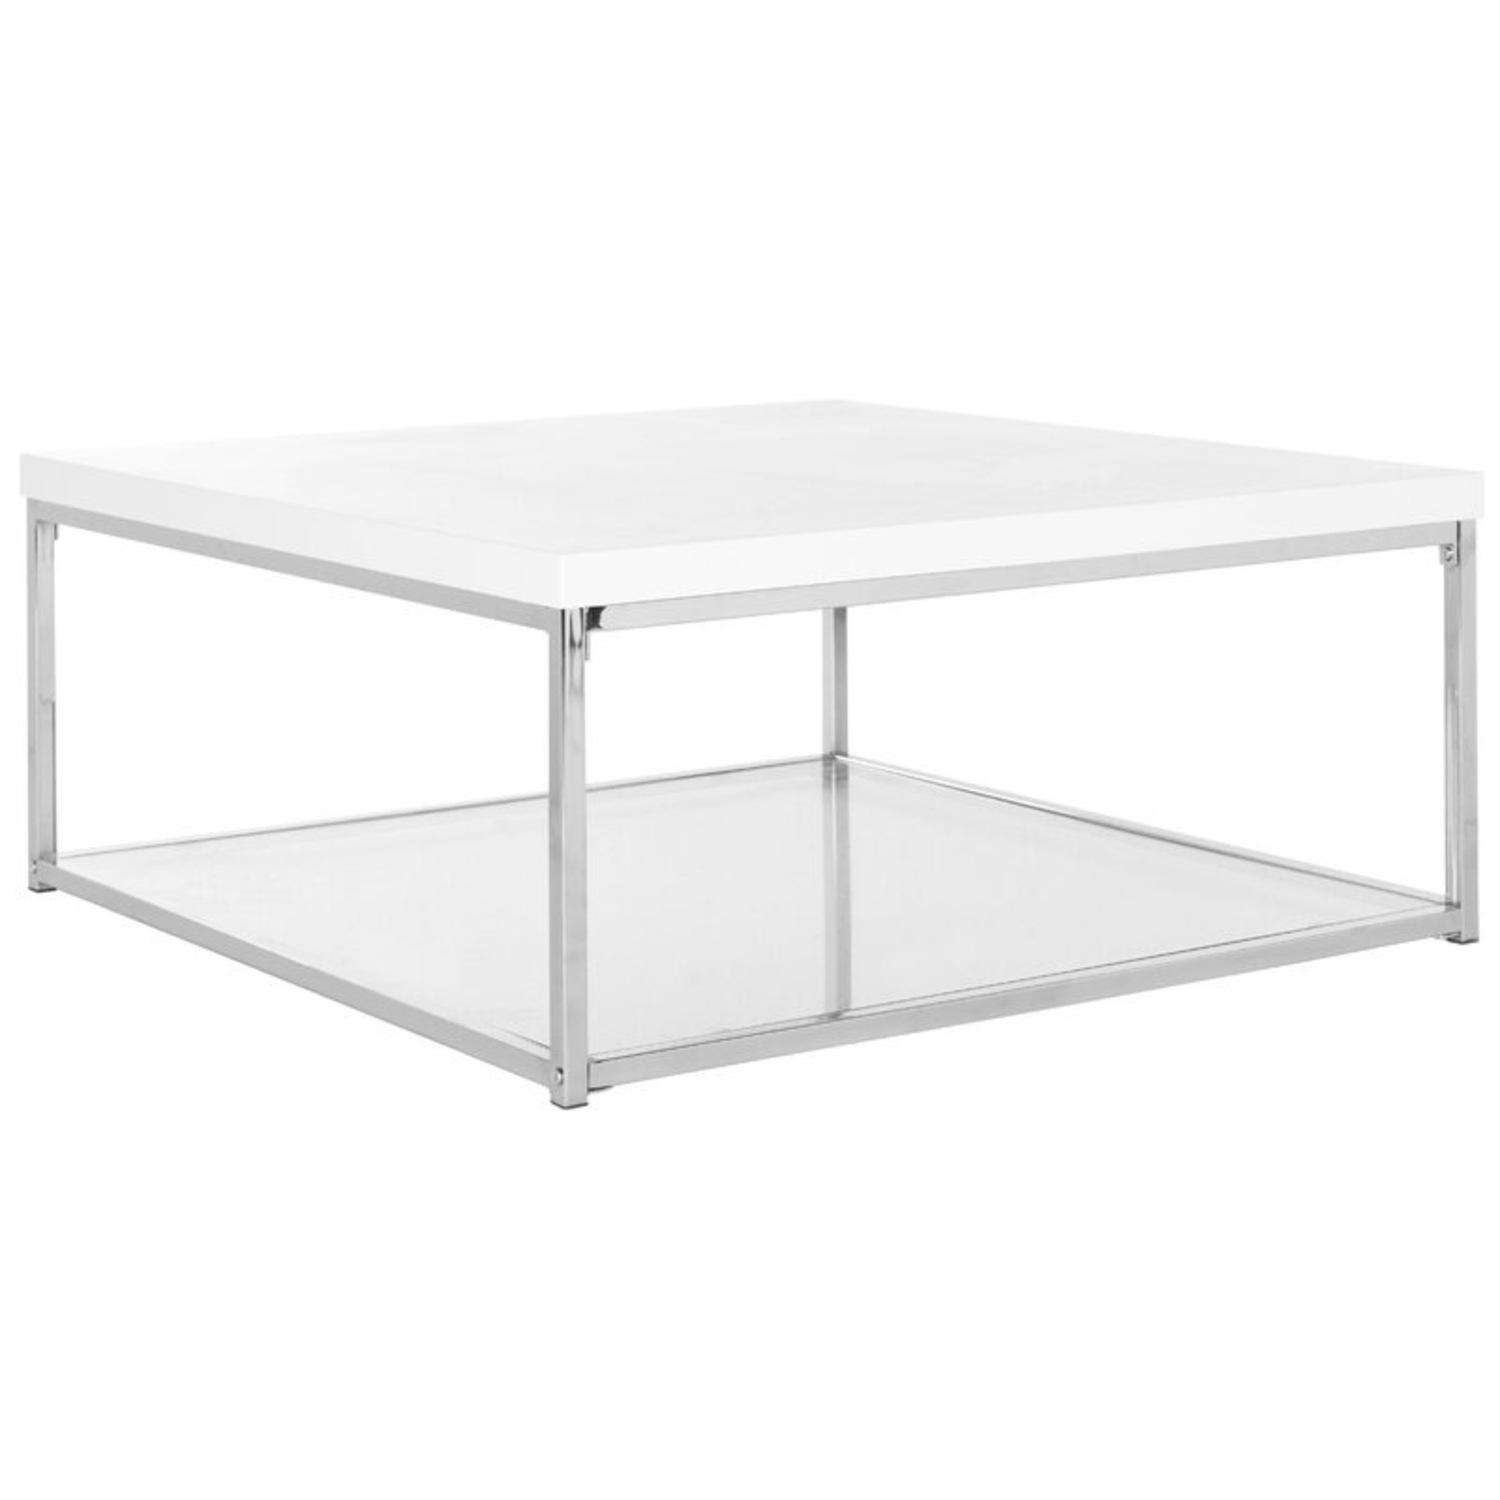 Modern Floor Coffee Table with Storage - image-1